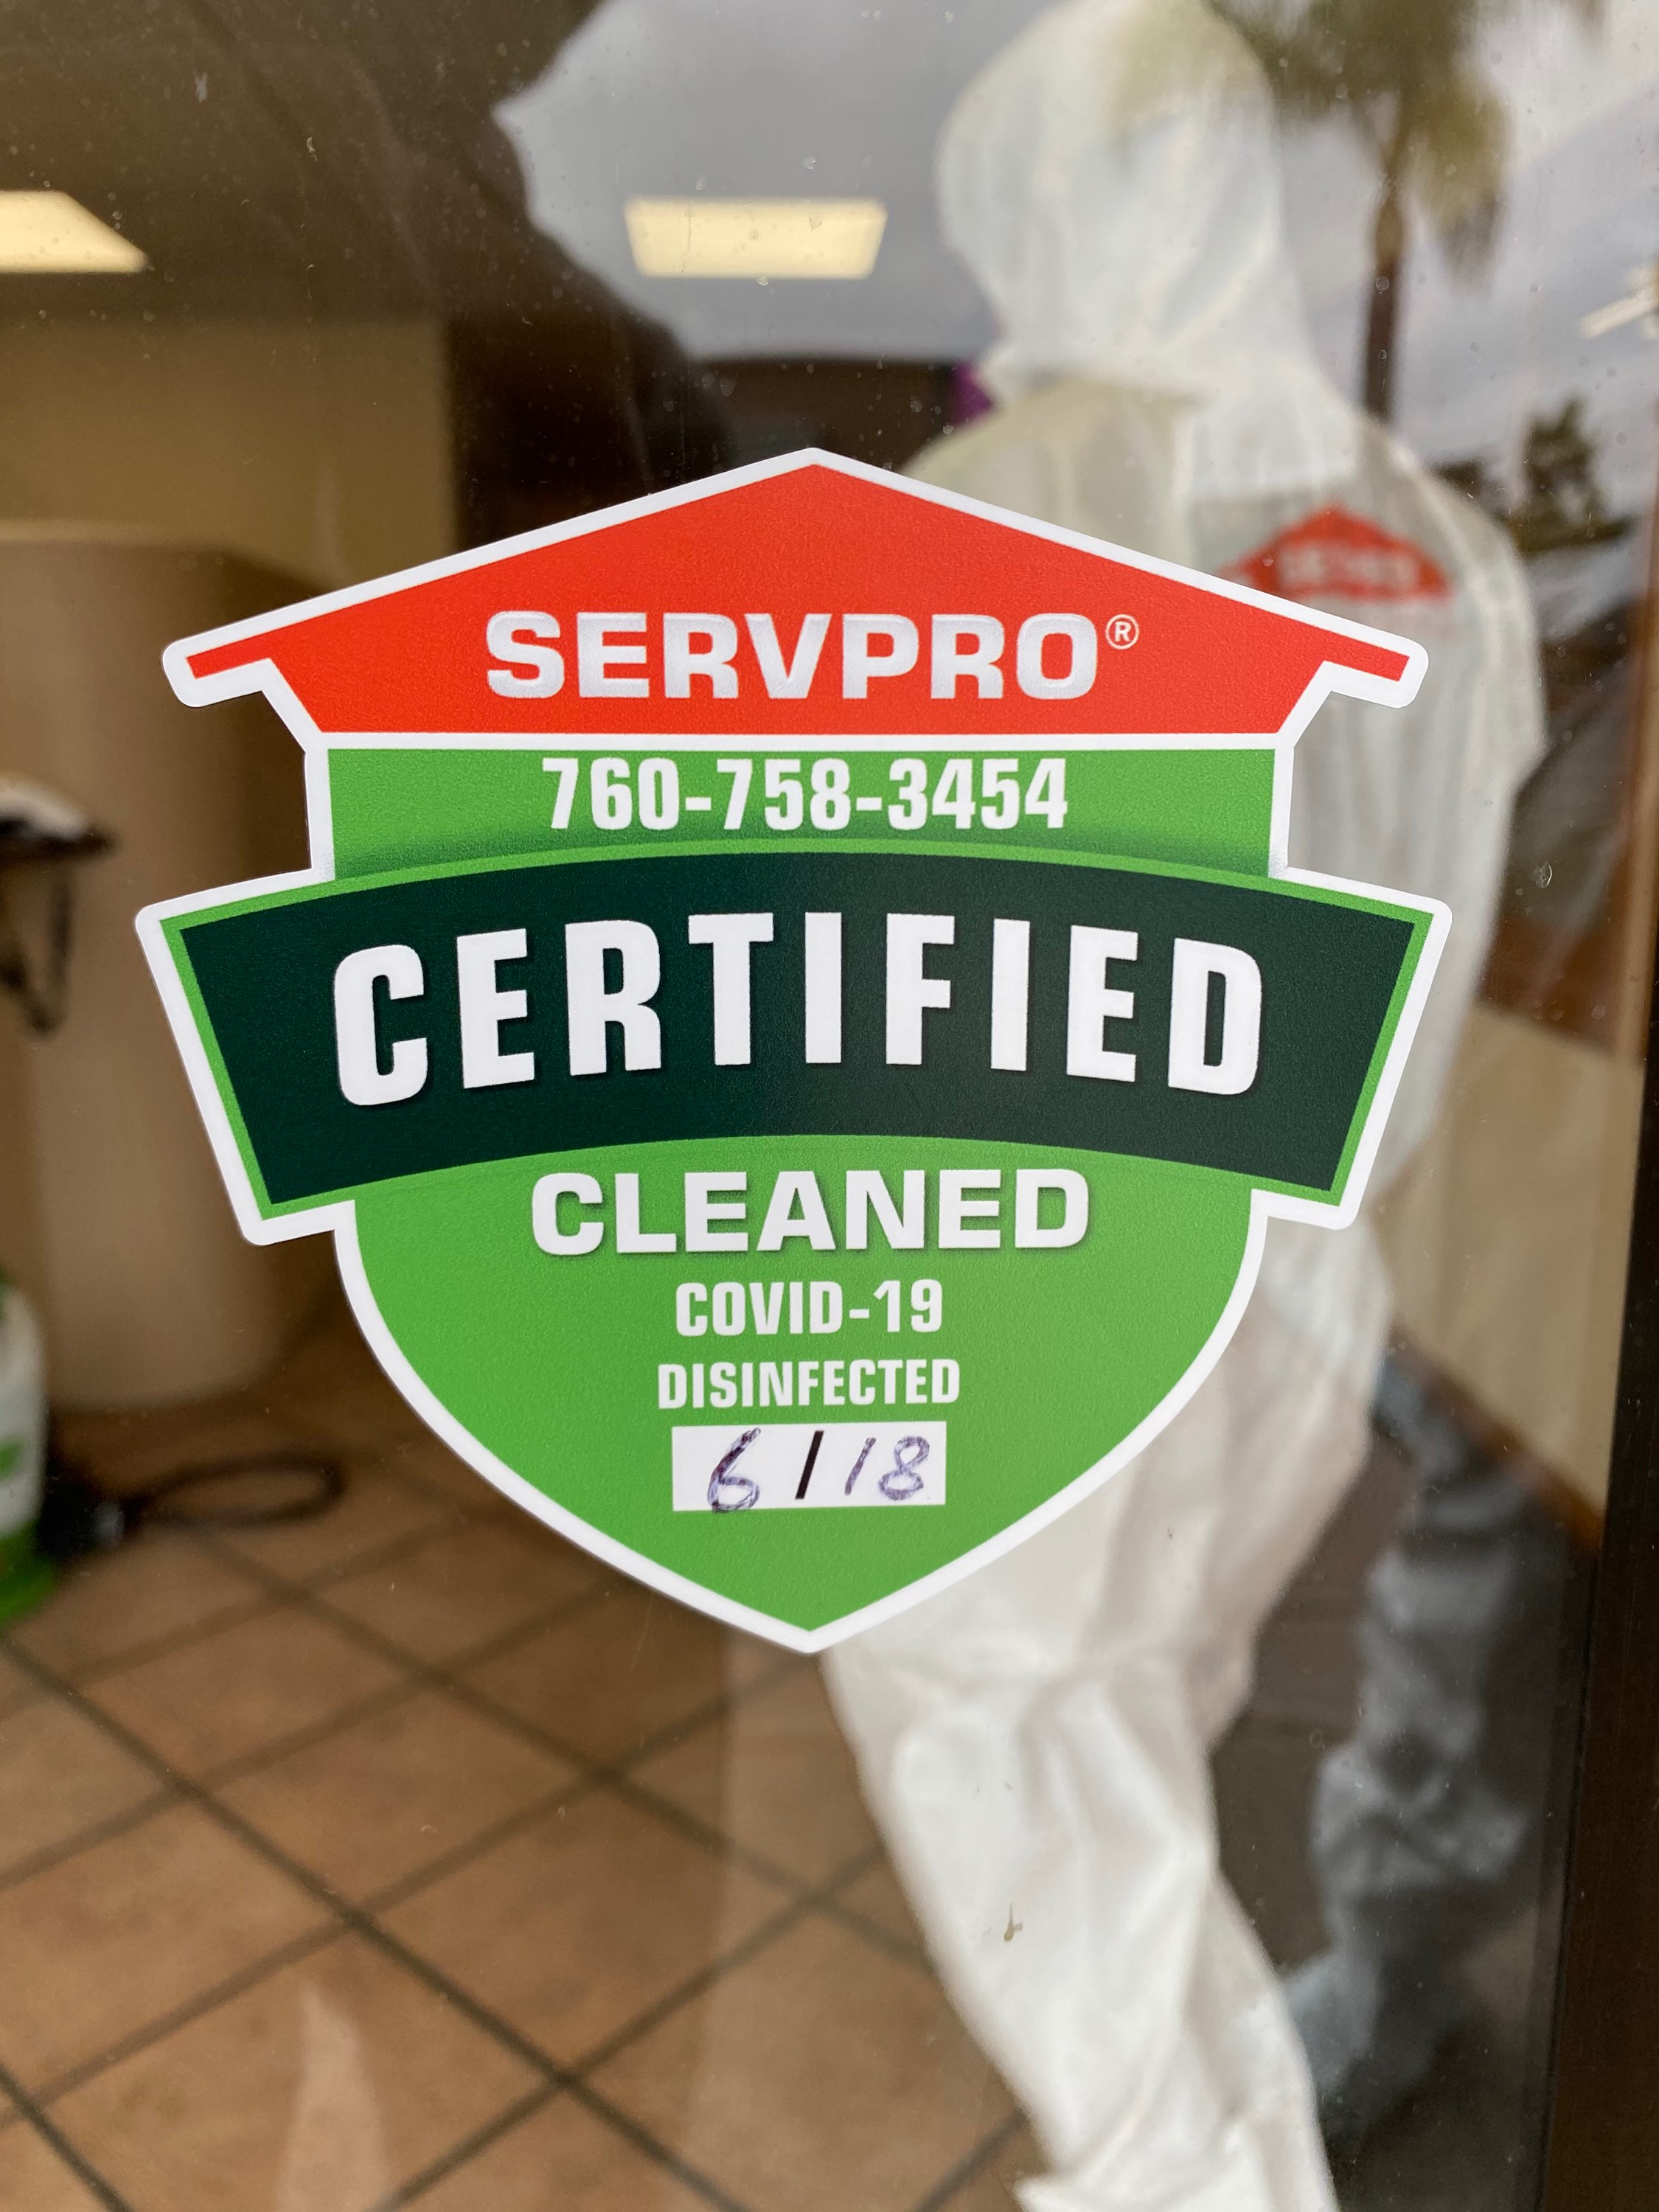 SERVPRO Joins the Frontline to Protect American Businesses Against COVID-19